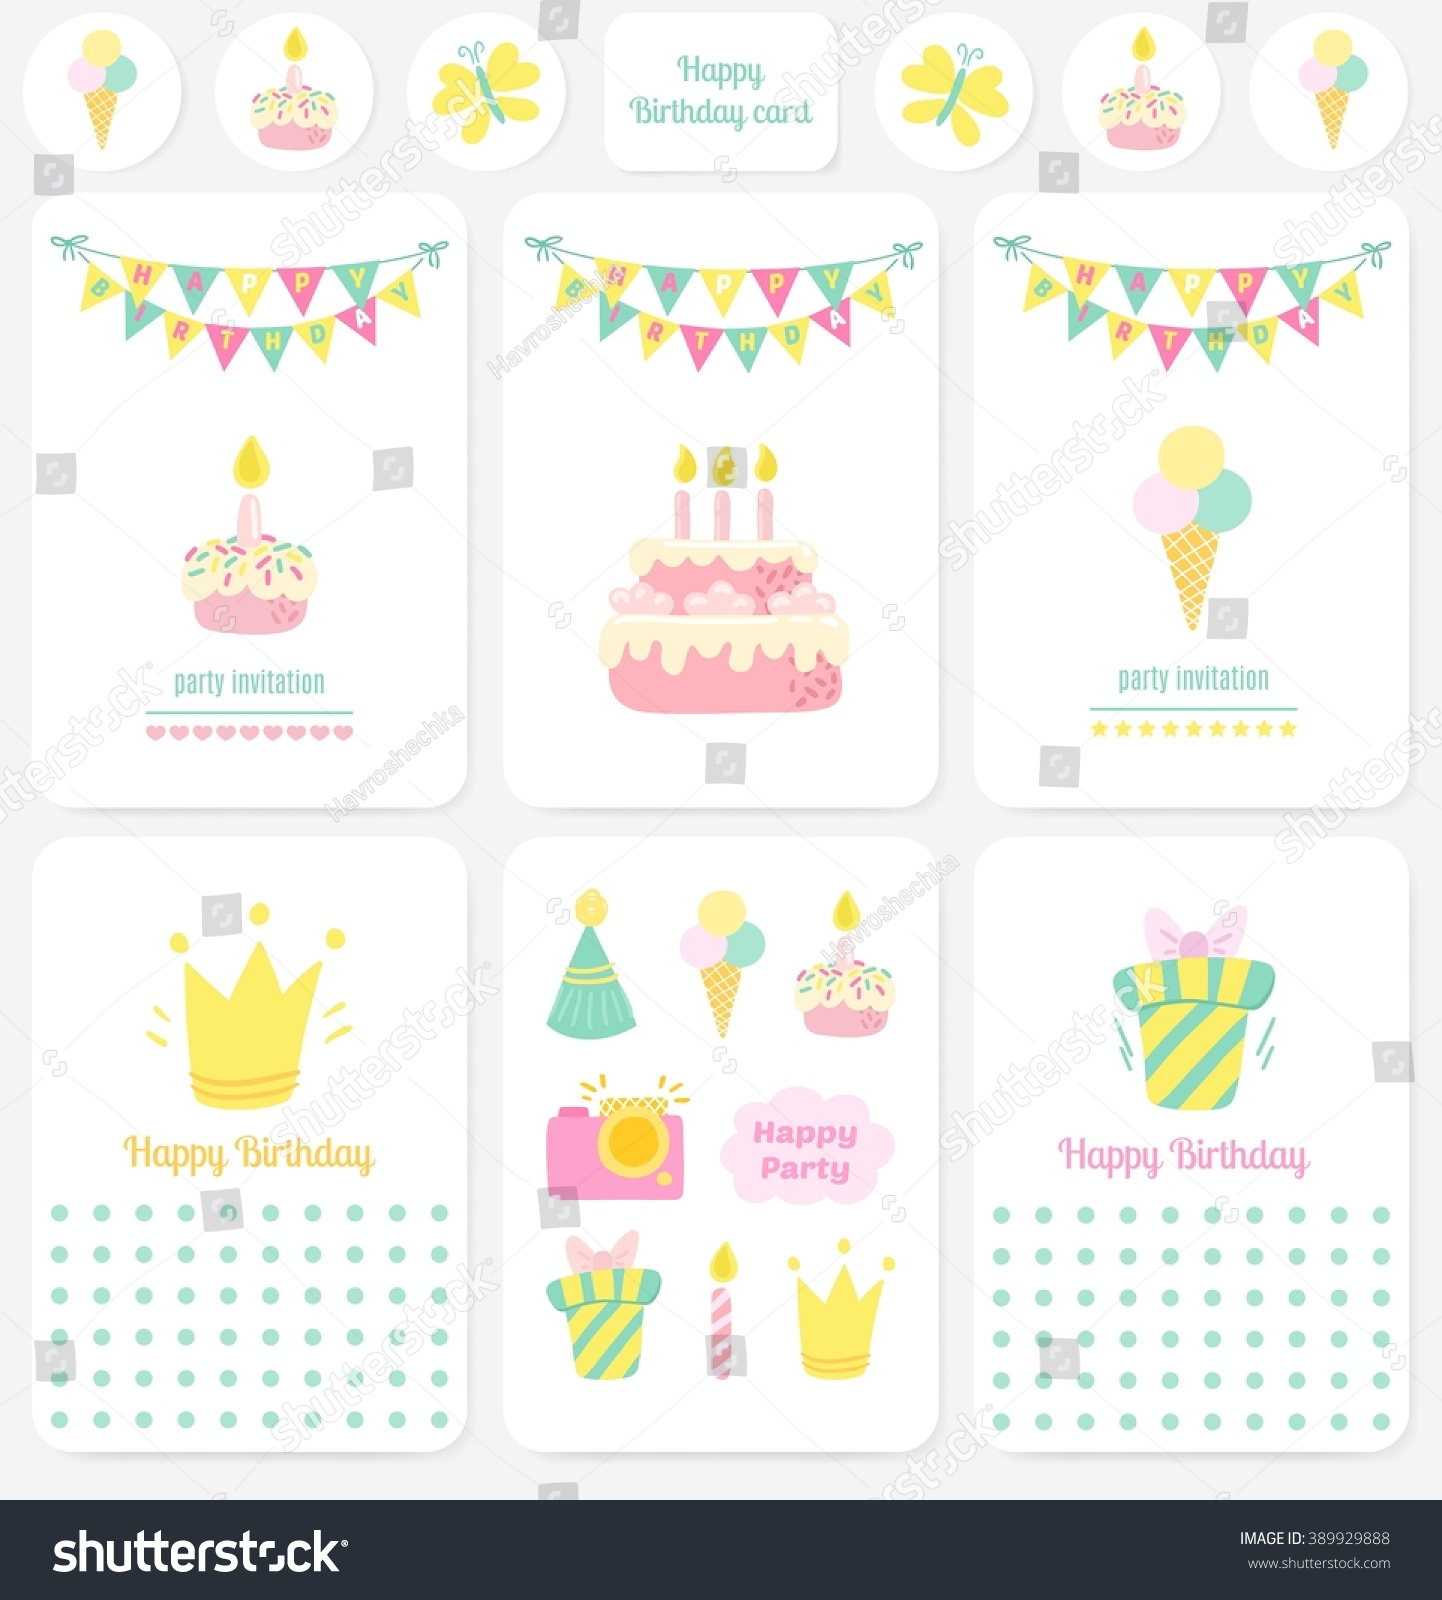 Happy Birthday Cards Notes Stickers Tags Party Birthday Vector – Birthday Cards Notes